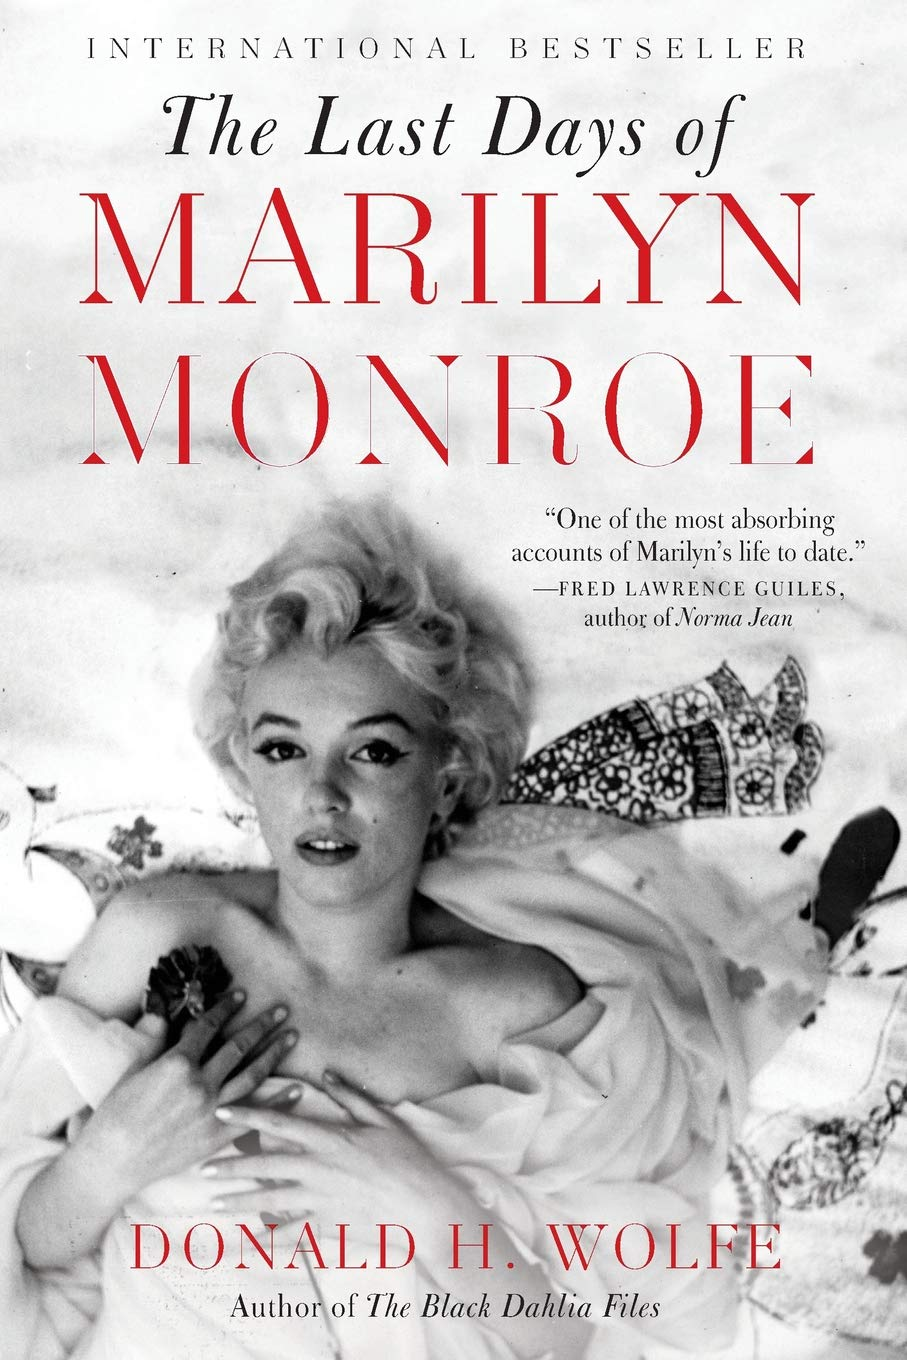 Image OfThe Last Days Of Marilyn Monroe